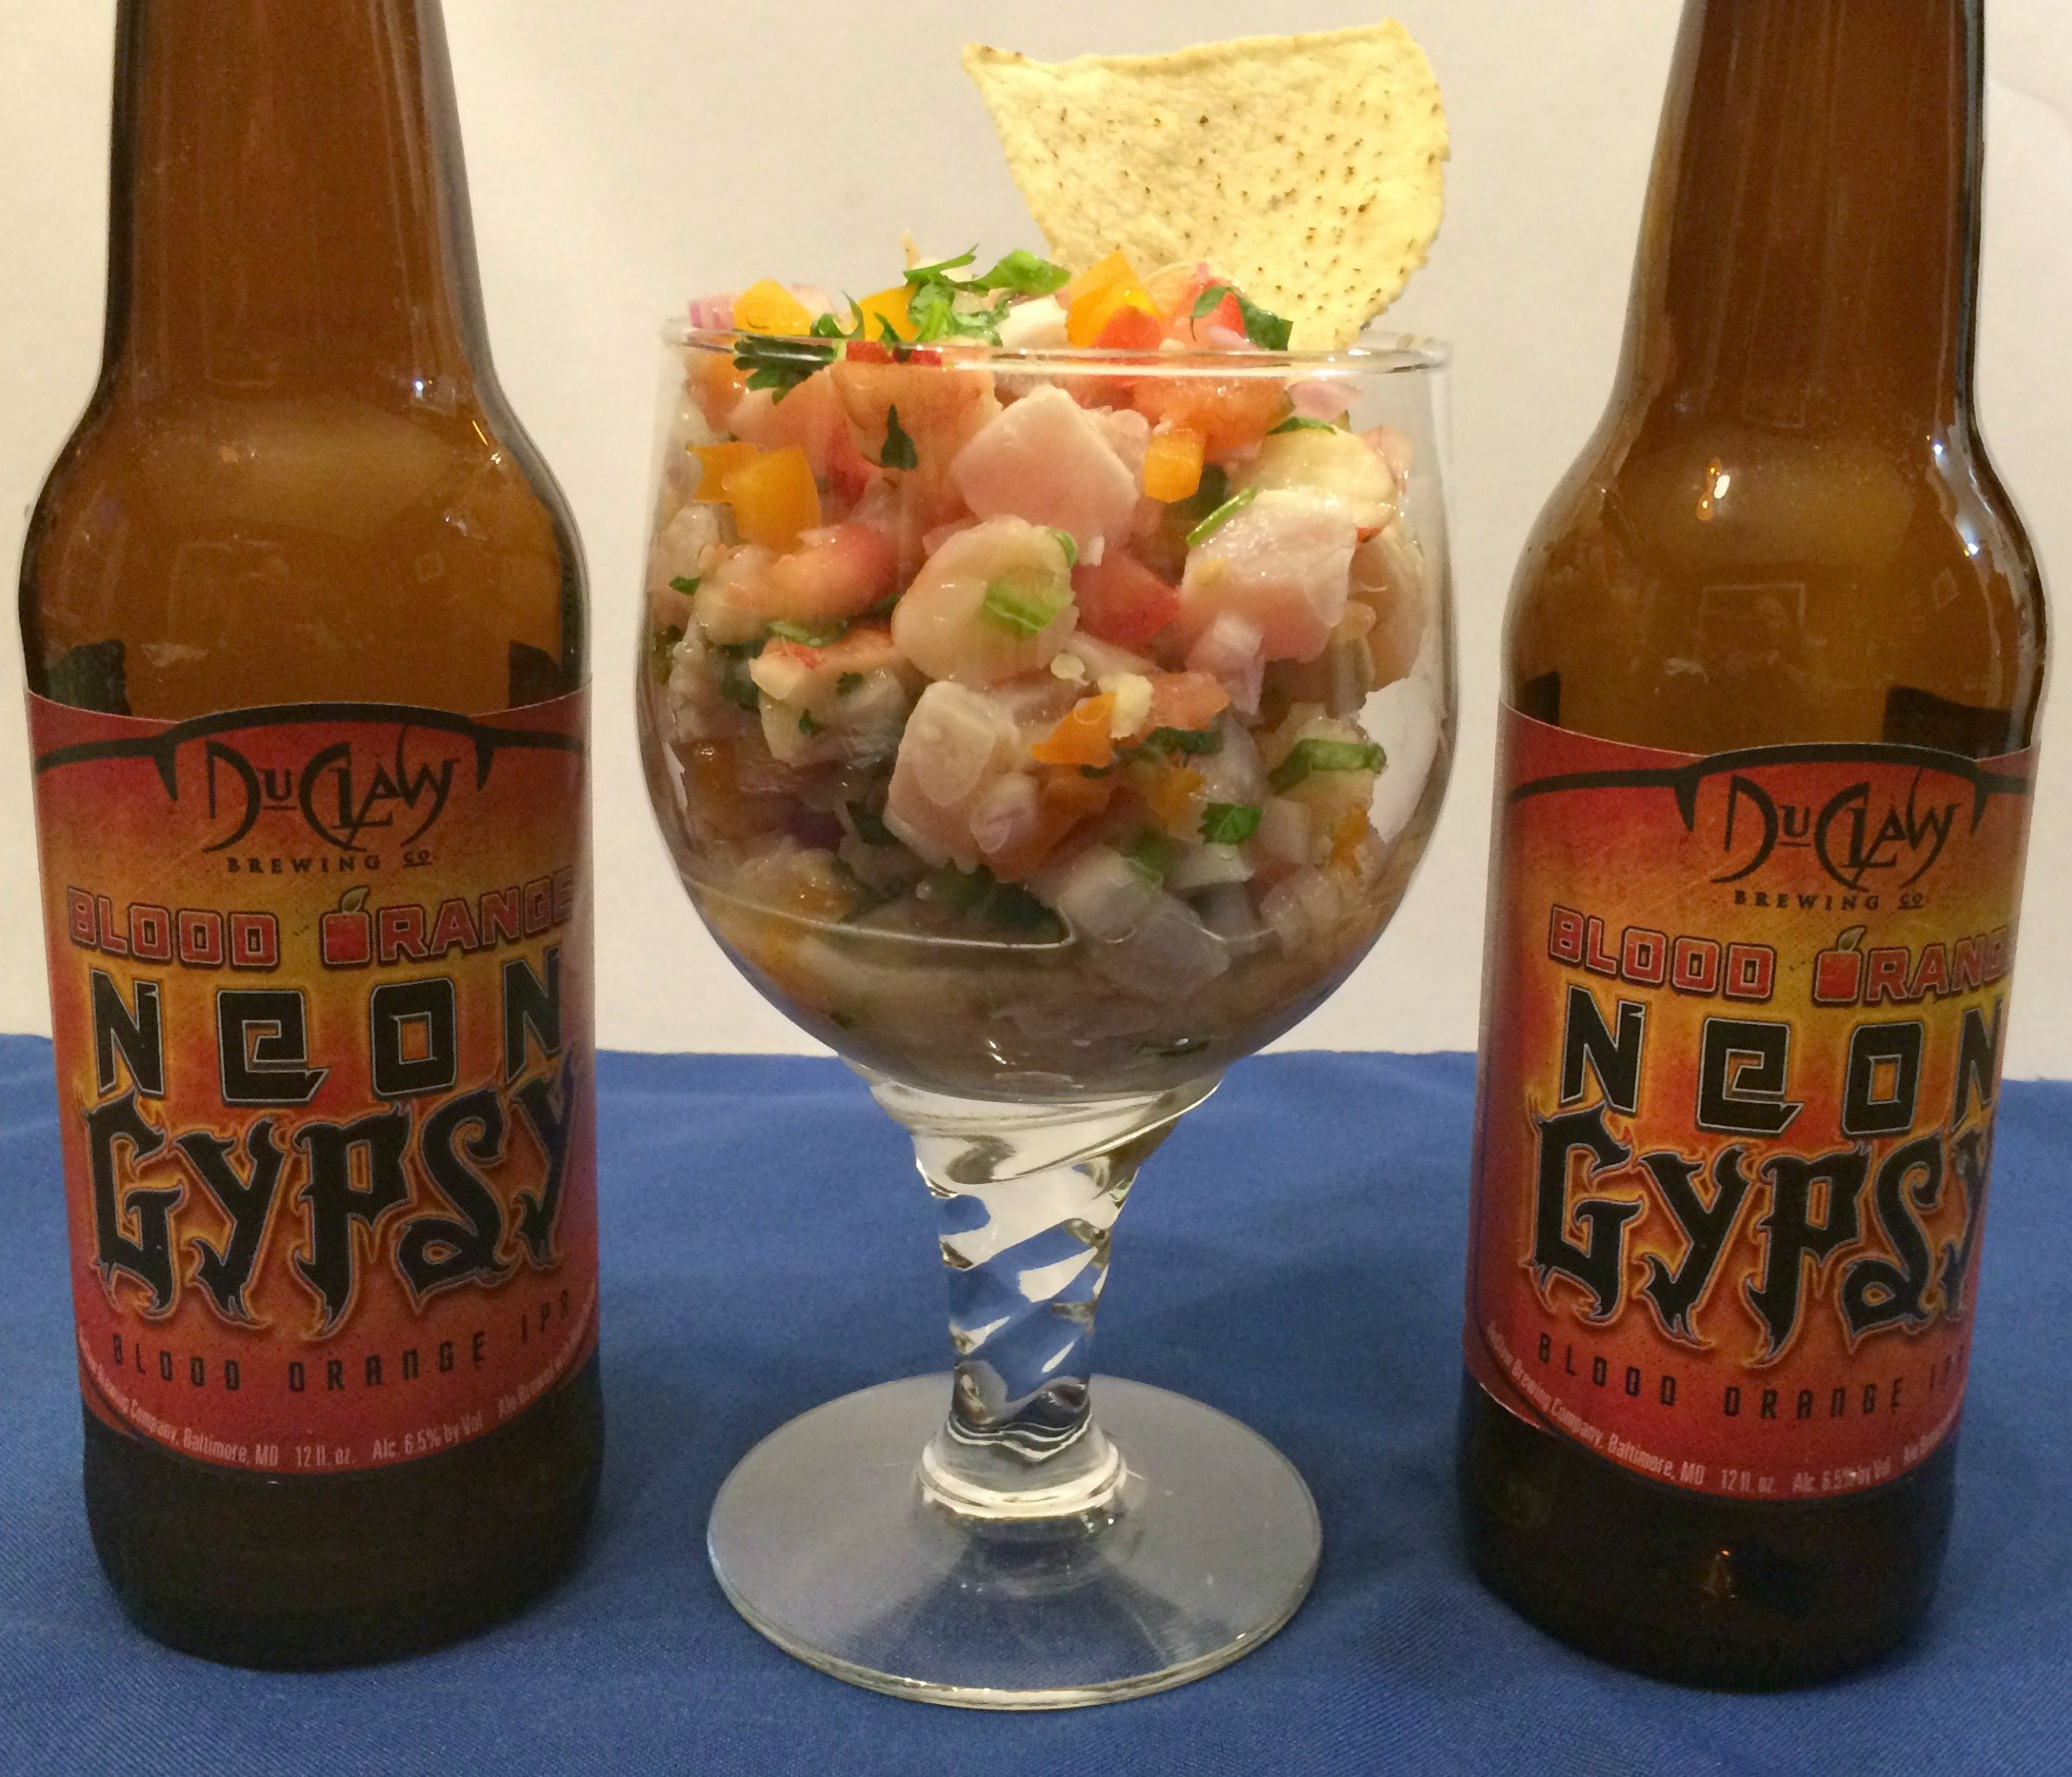 DuClaw Blood Orange Neon Gypsy Ceviche